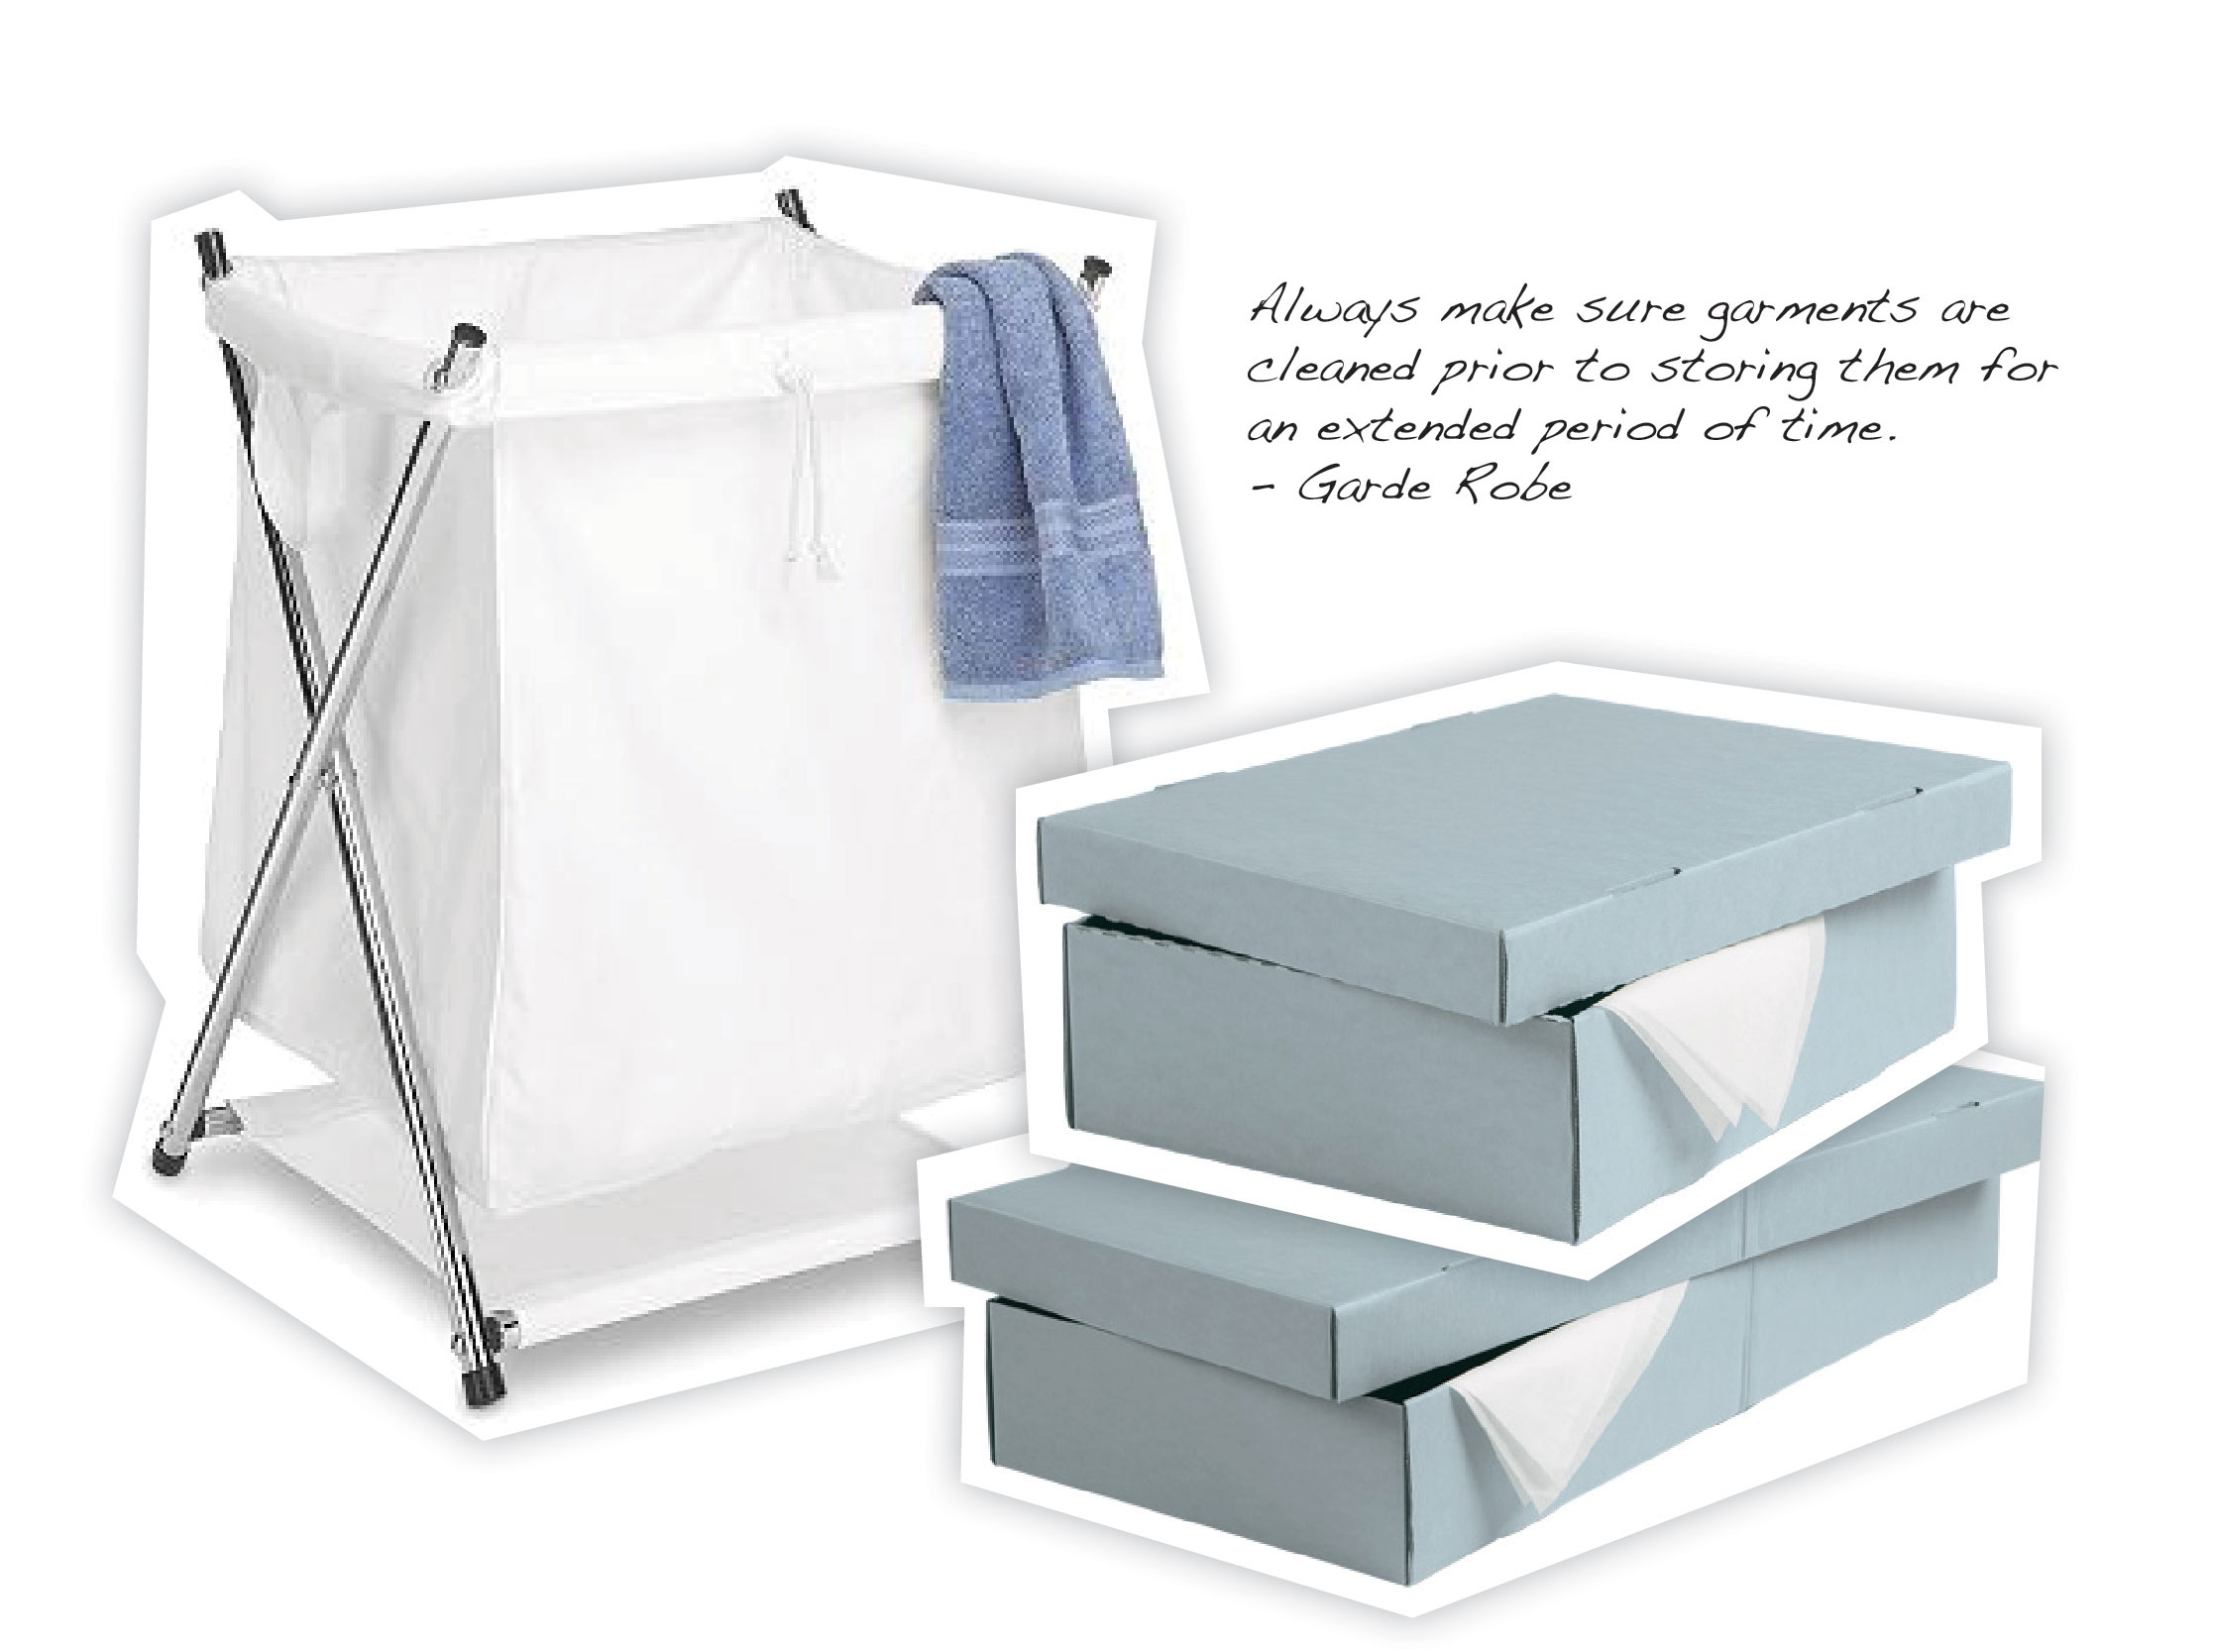 how to store your wardrobe q a doug greenberg of garde robe laundry basket acid garment storage box